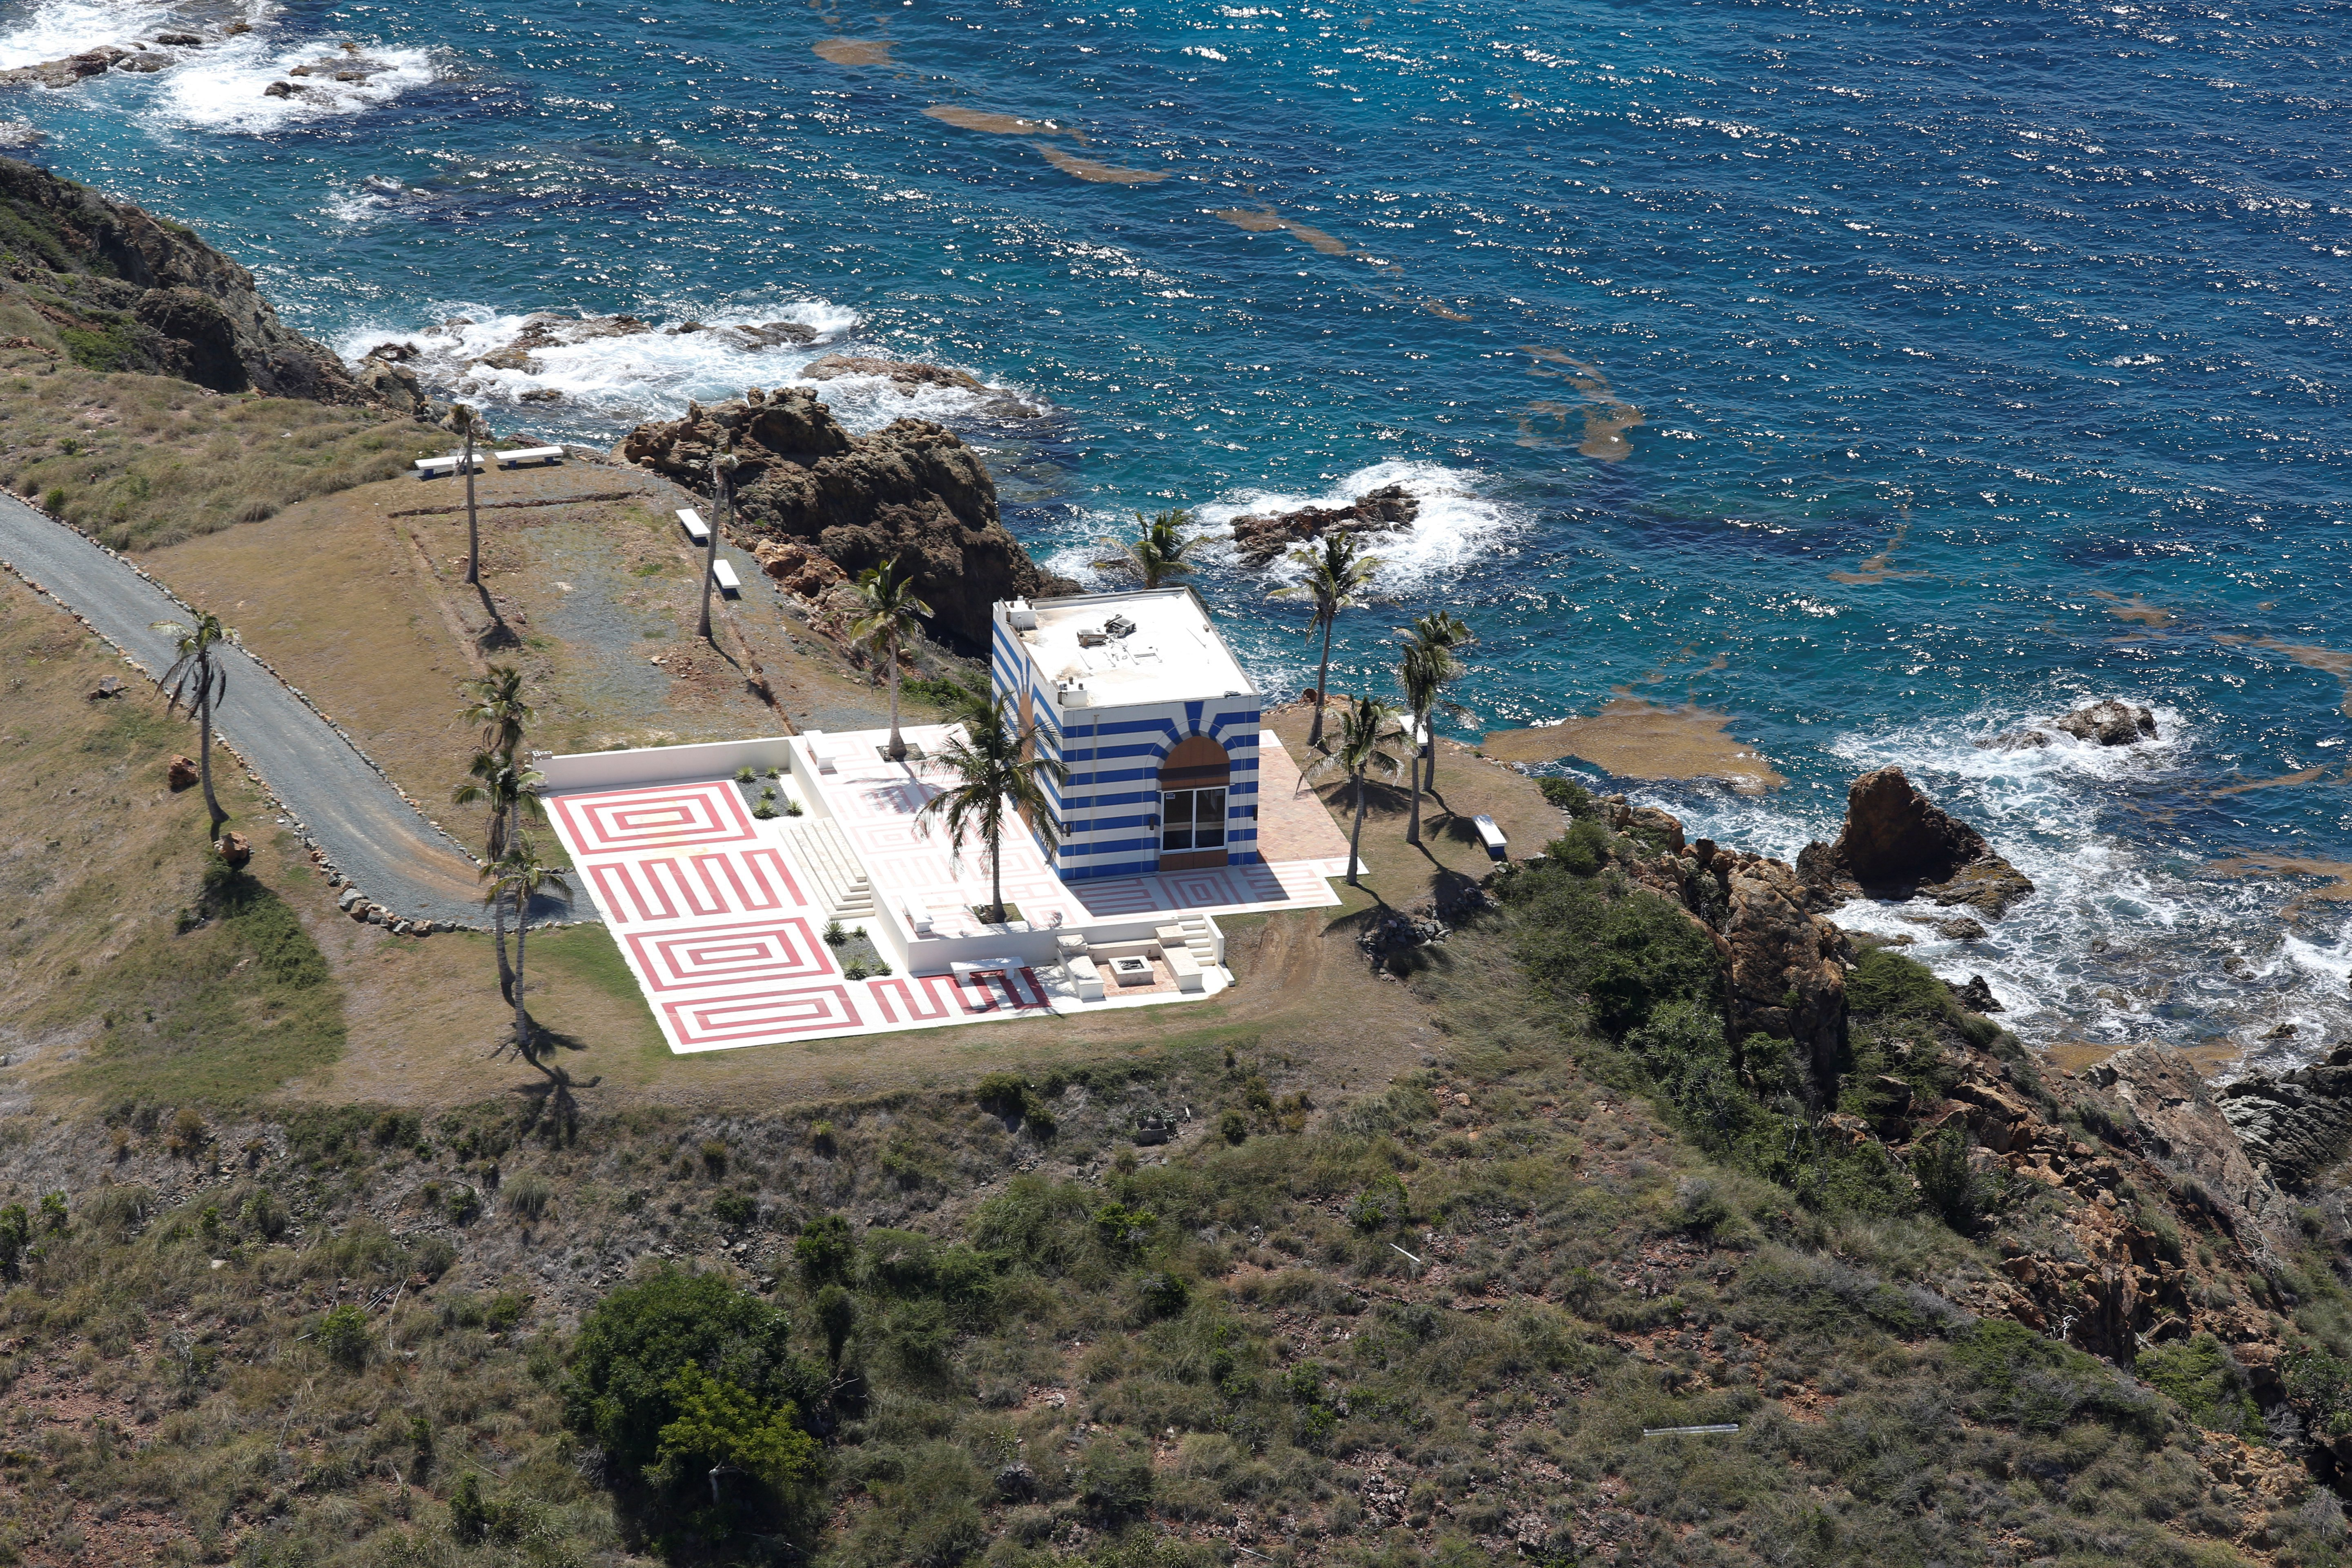 A building at Little St. James Island, one of the properties of financier Jeffrey Epstein, is seen in an aerial view, near Charlotte Amalie, St. Thomas, U.S. Virgin Islands July 21, 2019. The gold dome that previously topped the structure had been blown off by a 2017 hurricane. (Photo: REUTERS/Marco Bello)